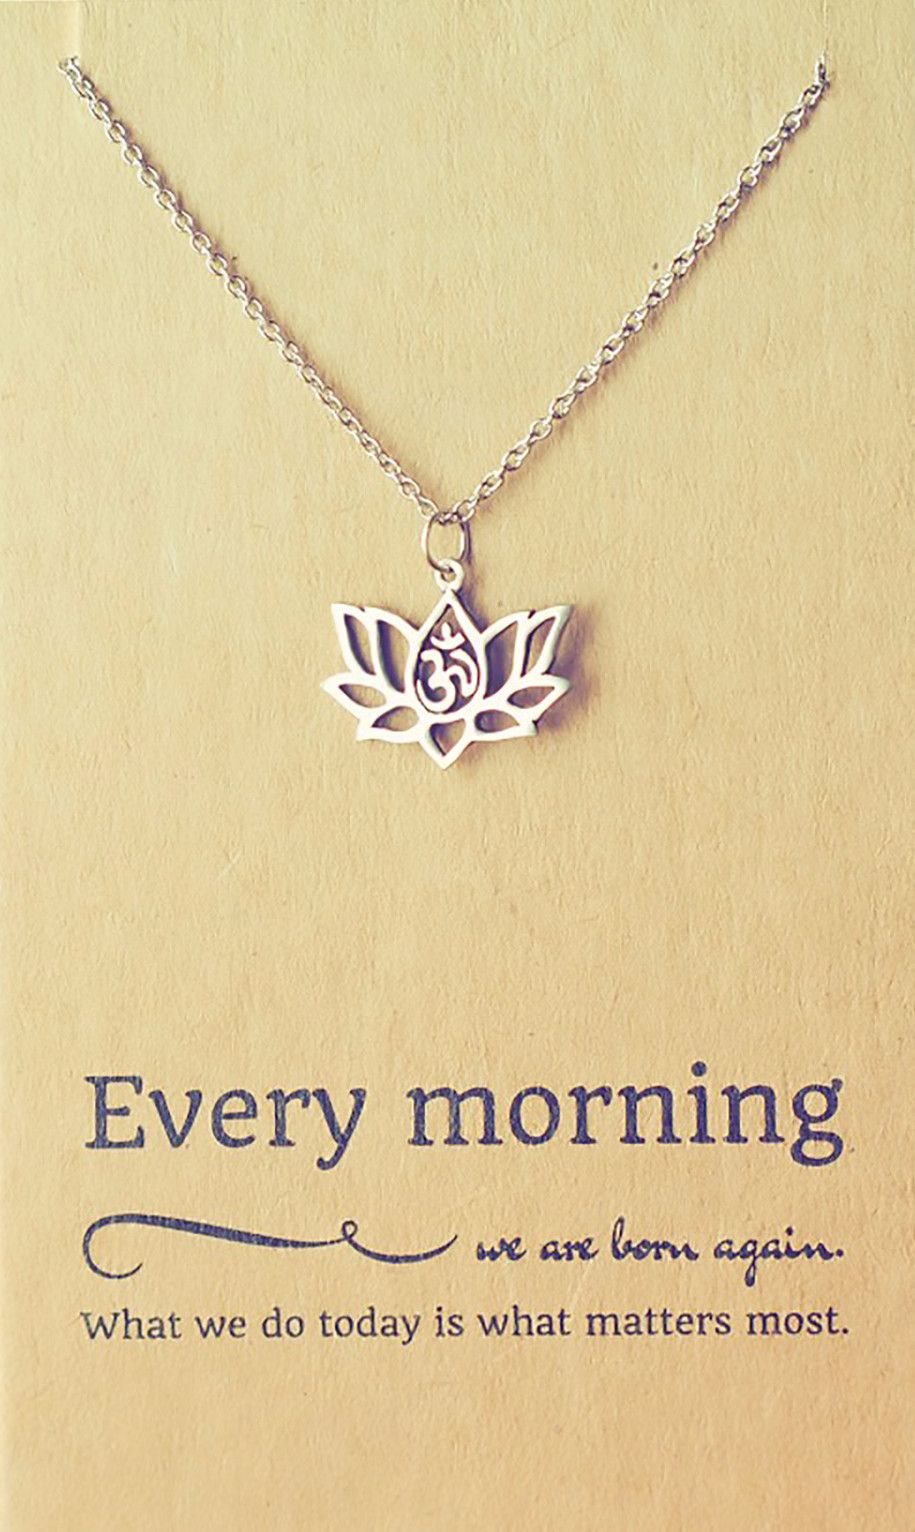 lotus flower necklace meaning